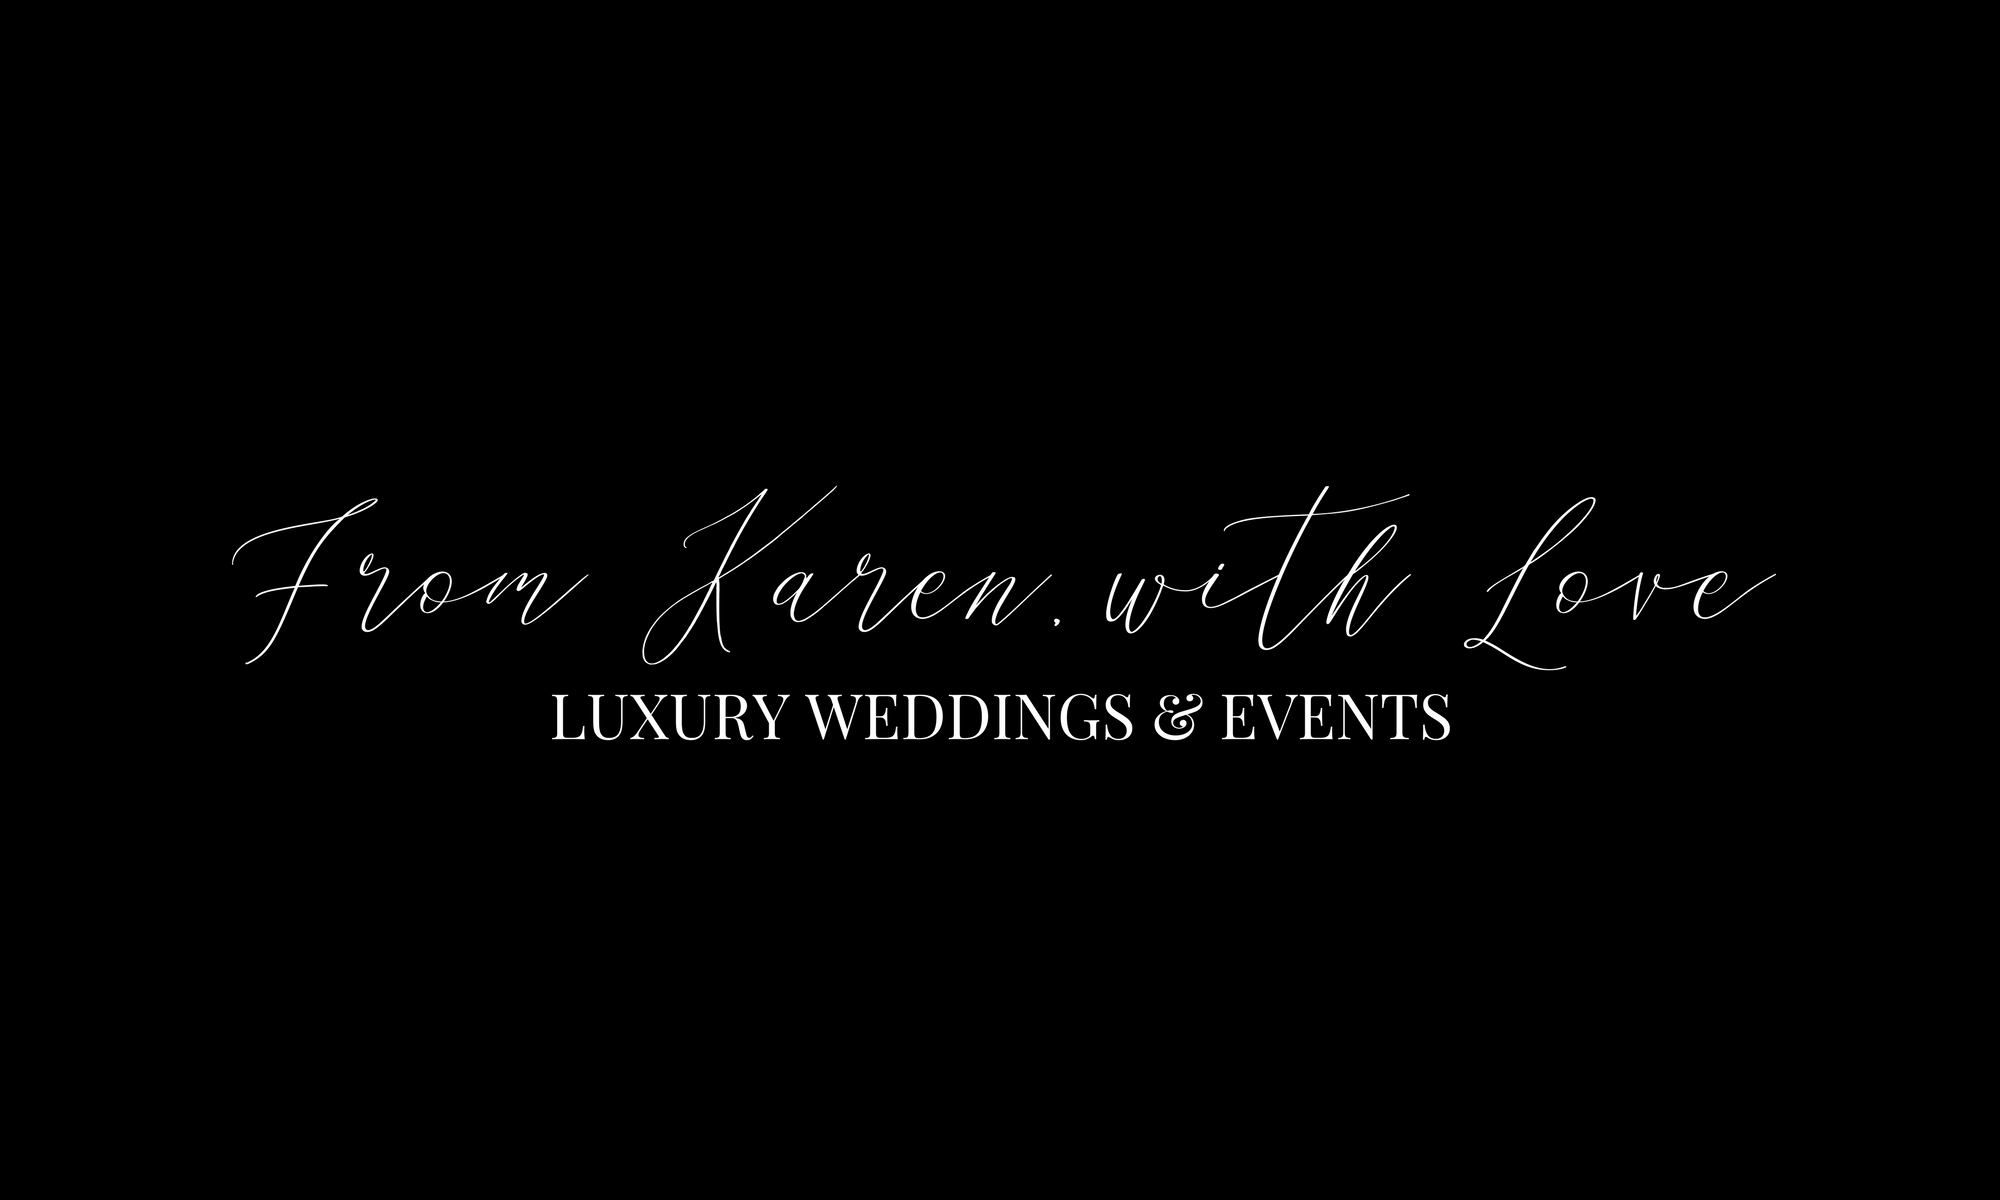 From Karen, with Love Events